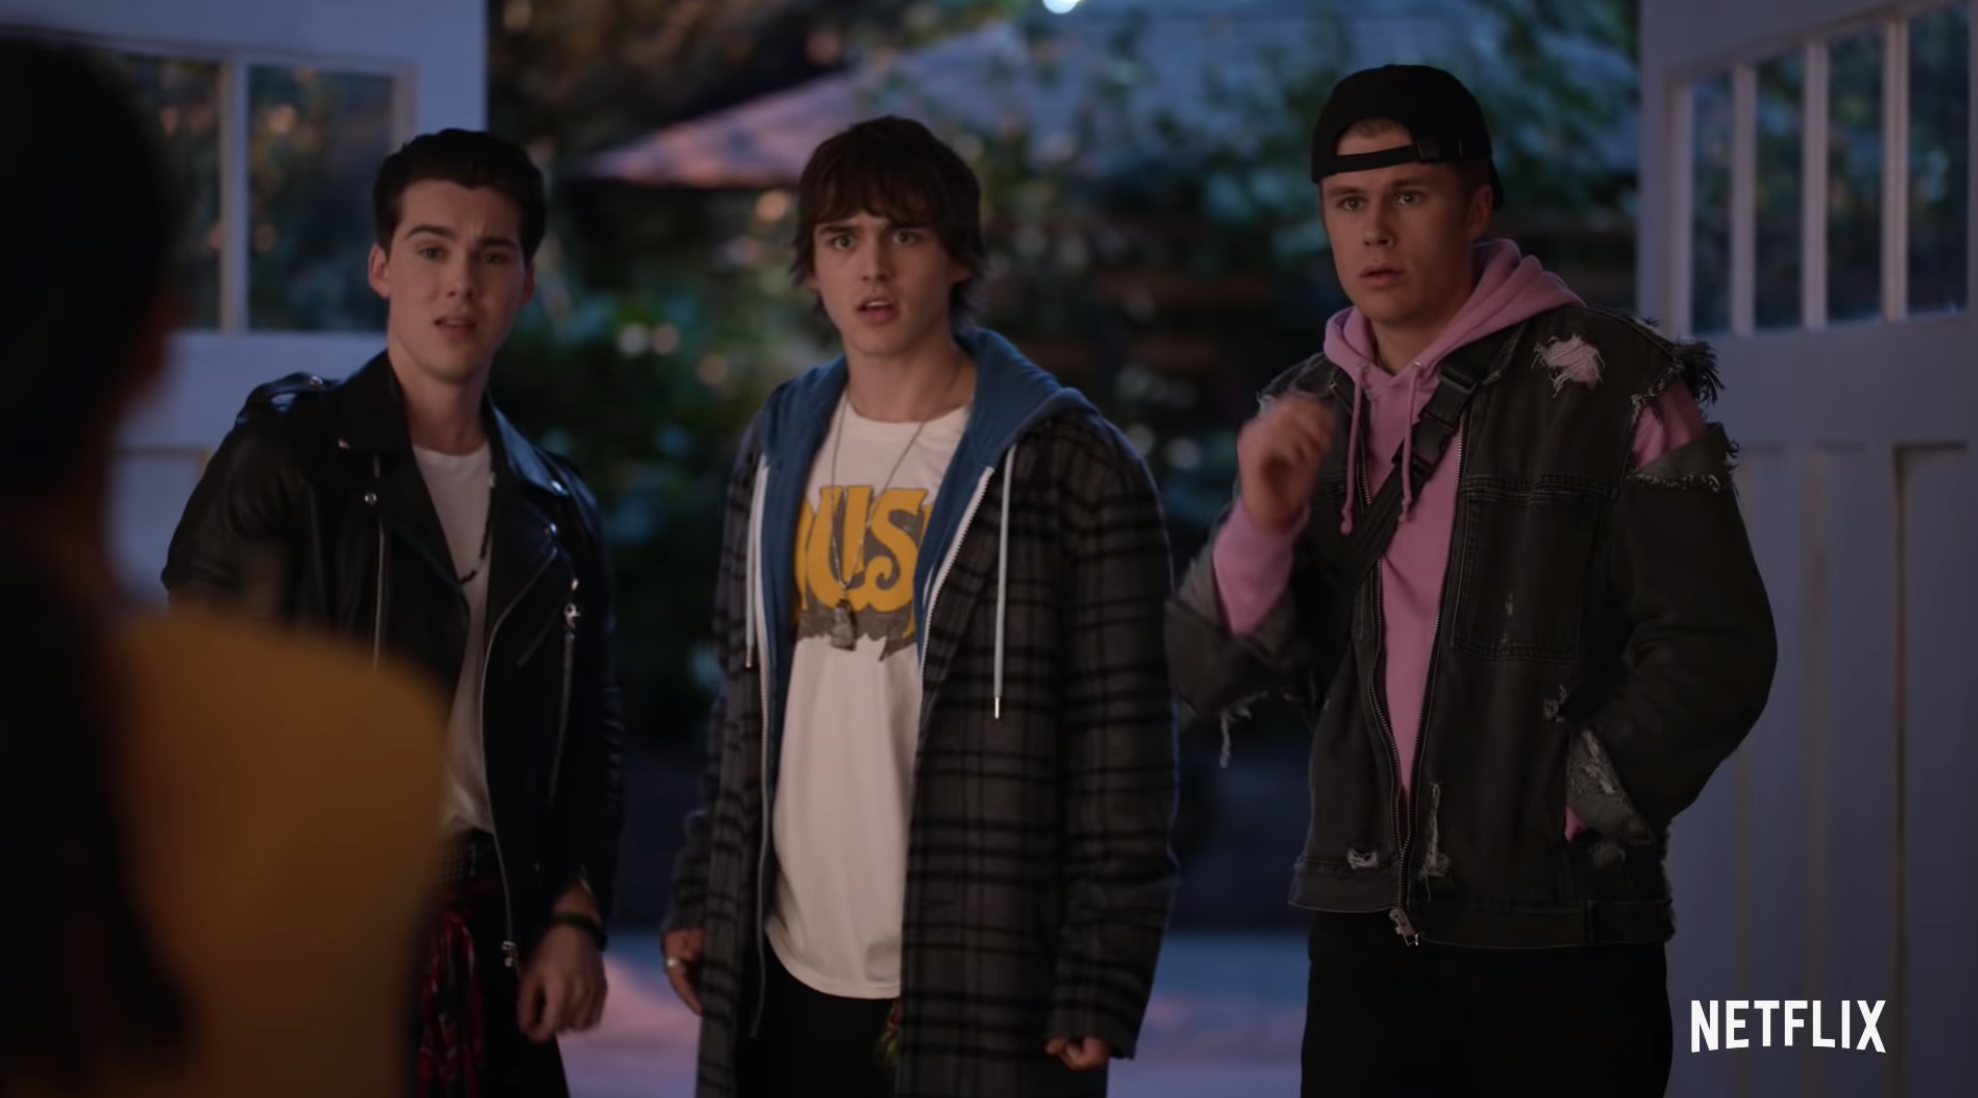 Reggie, Luke, and Alex looking at Julie like SHE'S the ghost.